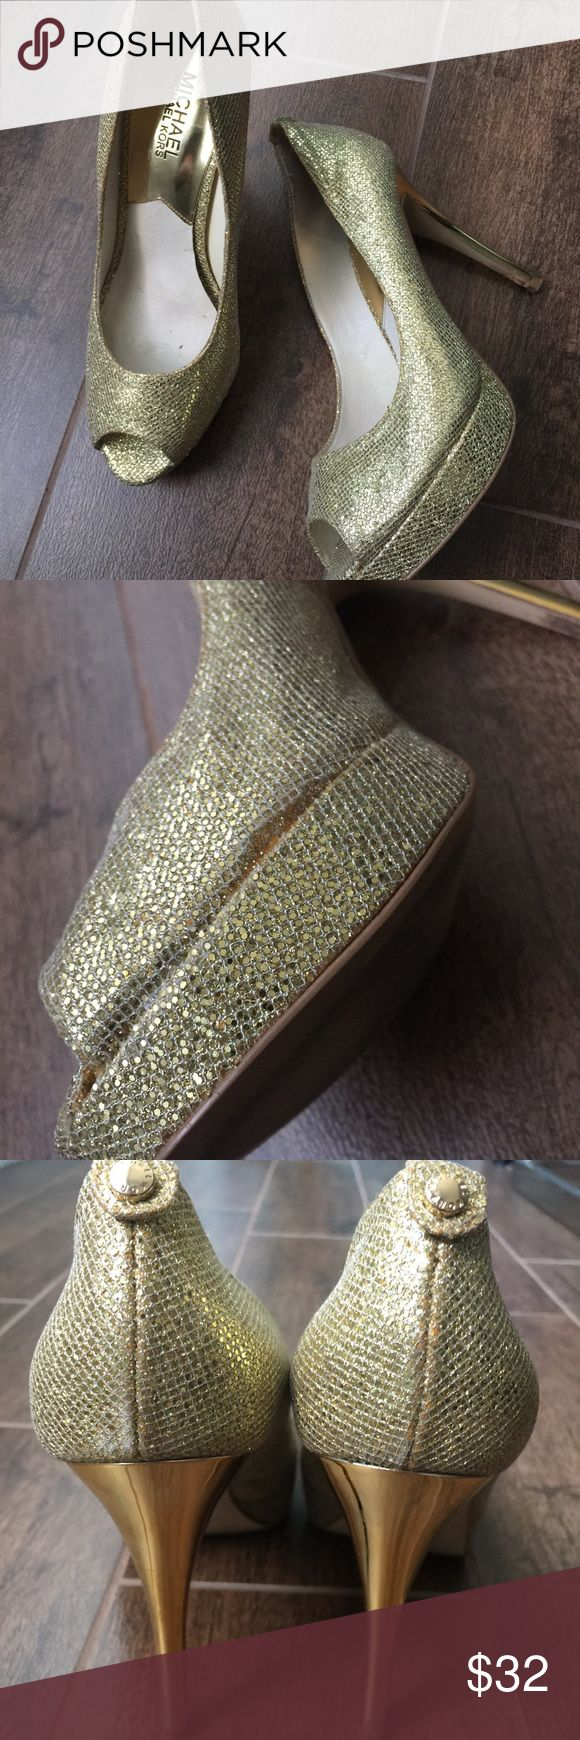 Michael Kors Gold peep toe heels sz 8M Pre owned Michael Kors women's gold peep toe heels sz 8 in good condition. The net on the shoe is lifting a bit but can easily be fixed with glue. Any questions please message me if you have any questions thank you and happy shopping! Michael Kors Shoes Heels